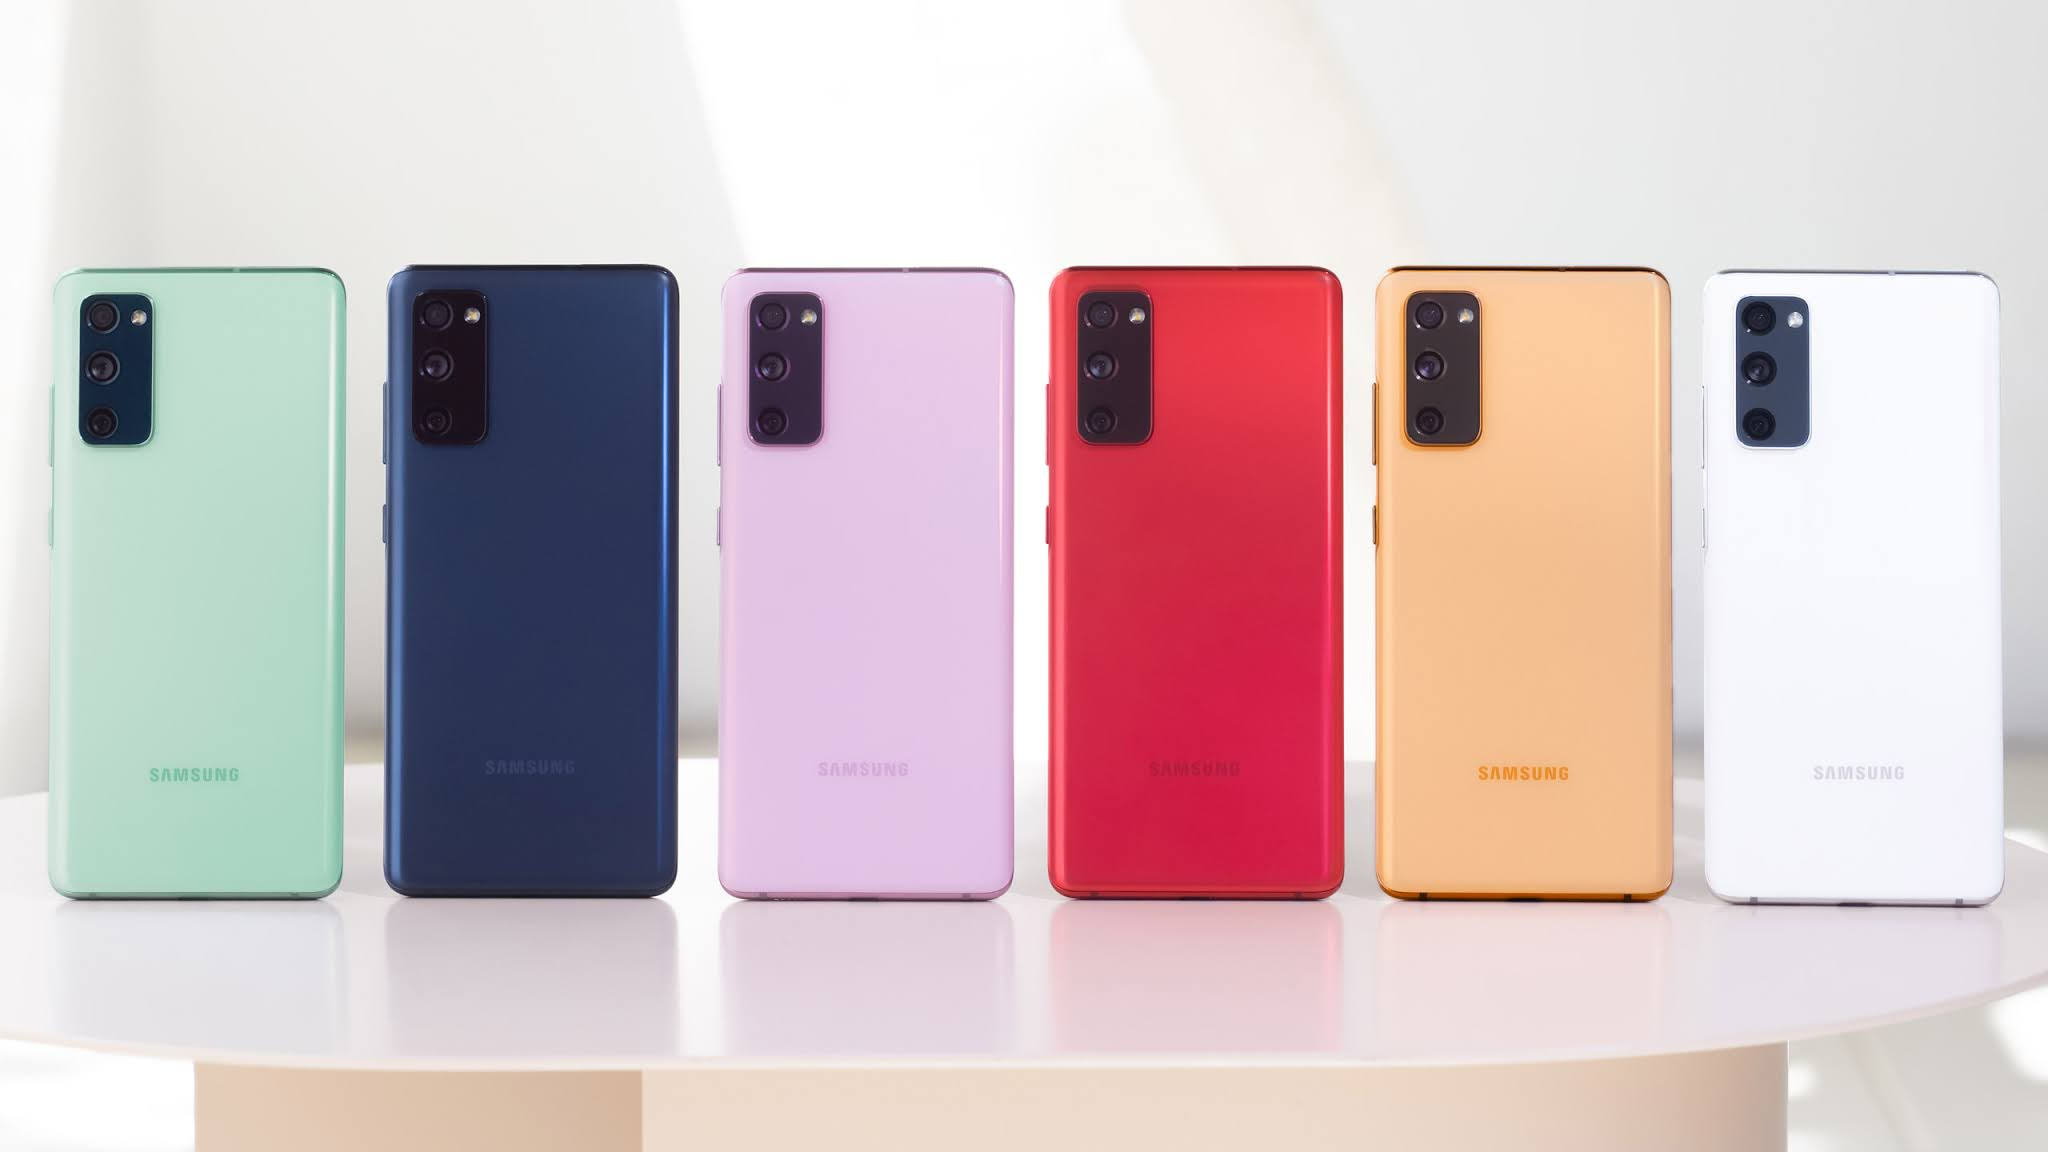 Samsung Galaxy S20 FE and Galaxy F62 received July 2021 patch update